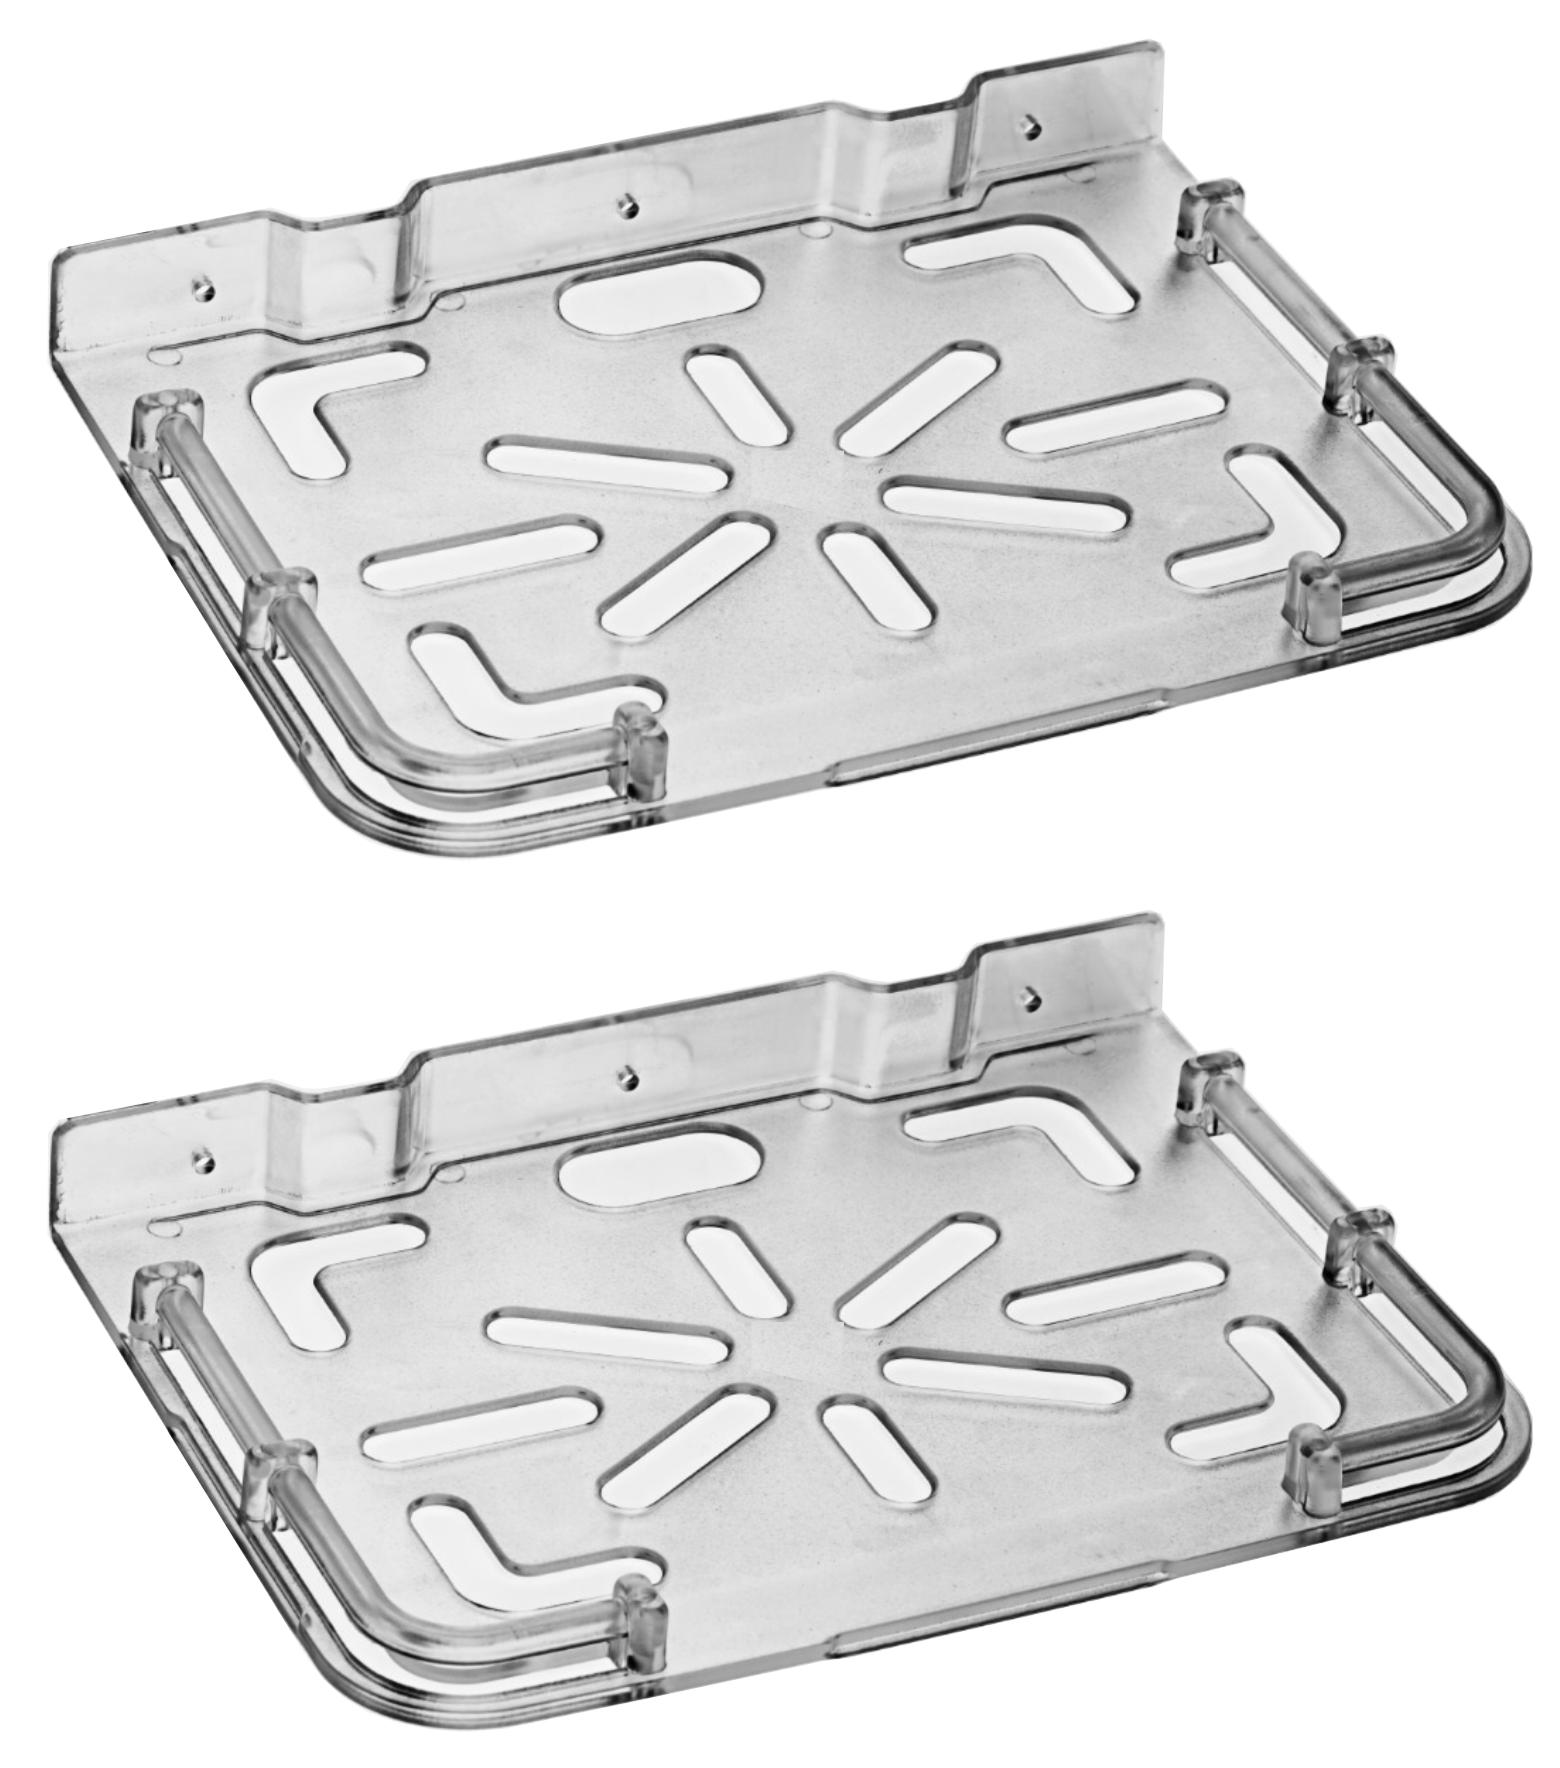 Drizzle Supreme Set Top Box Stand Clear, Set Top Box Shelf Transparent    Pack of 2 Pieces